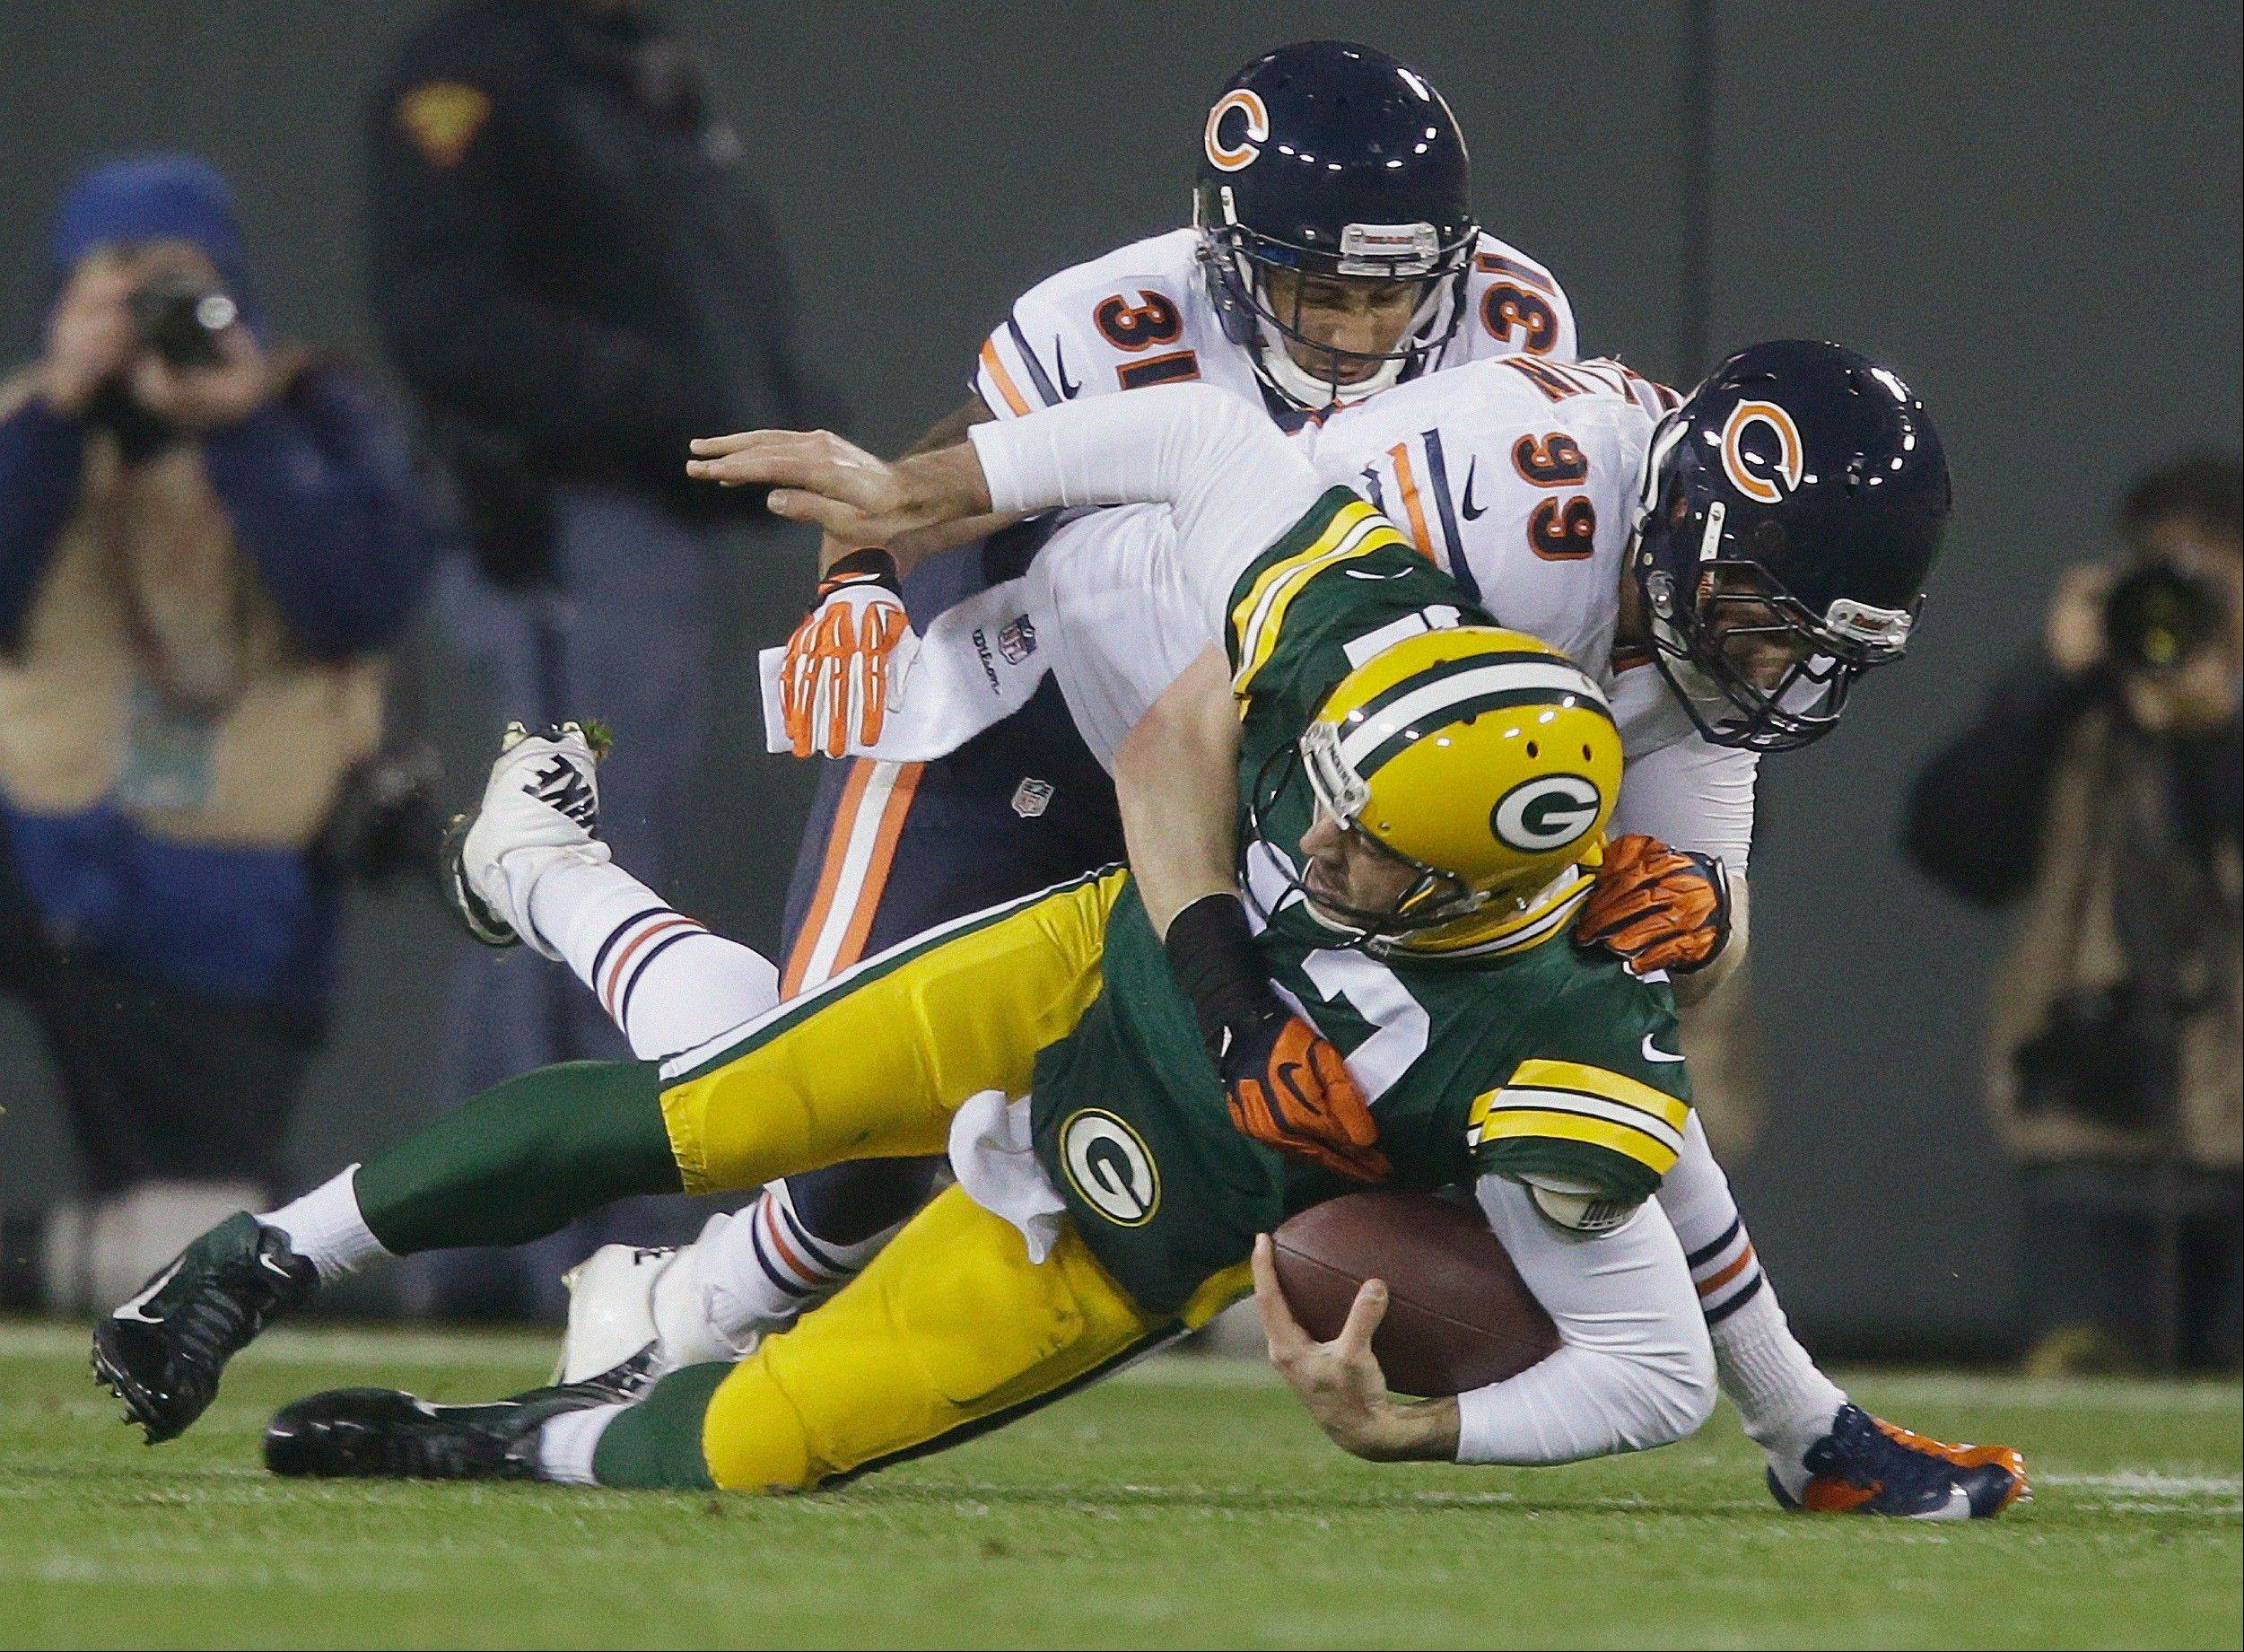 Green Bay Packers quarterback Aaron Rodgers is sacked by the Bears' Shea McClellin (99) and Isaiah Frey (31) during the first half.